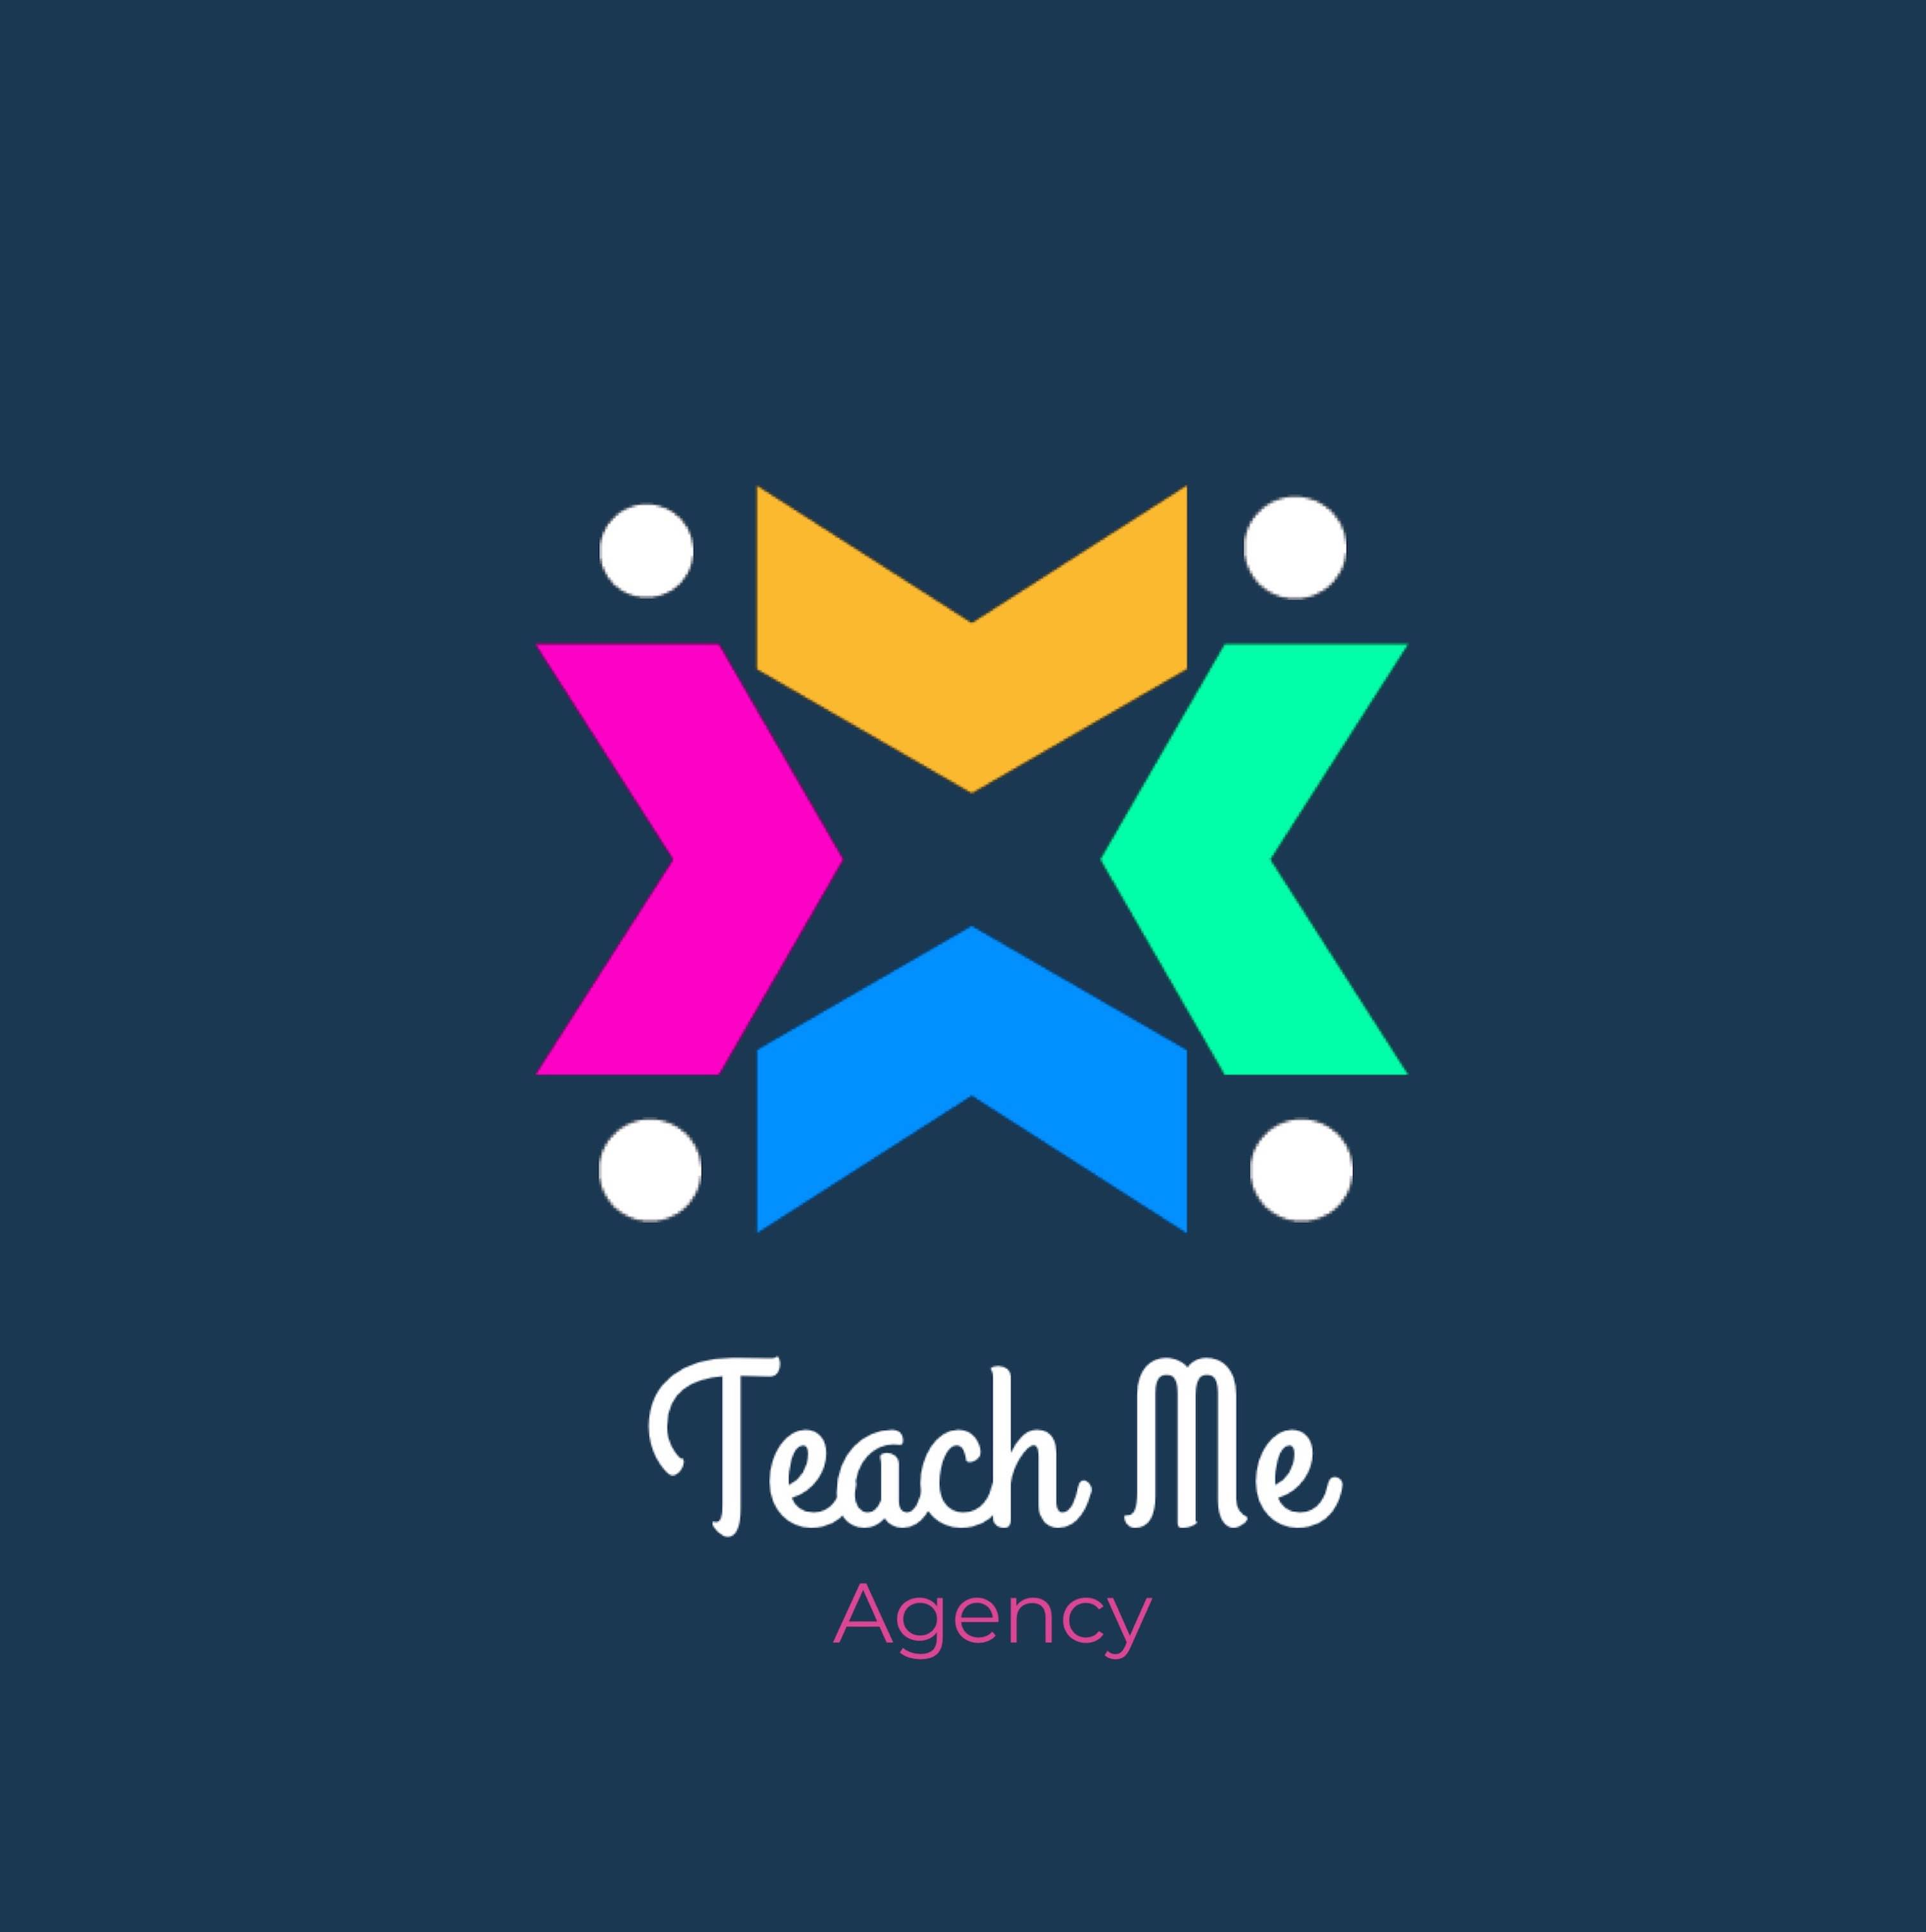 Teach Me Agency's Work Experience tools for 16-18 year olds- Application Process